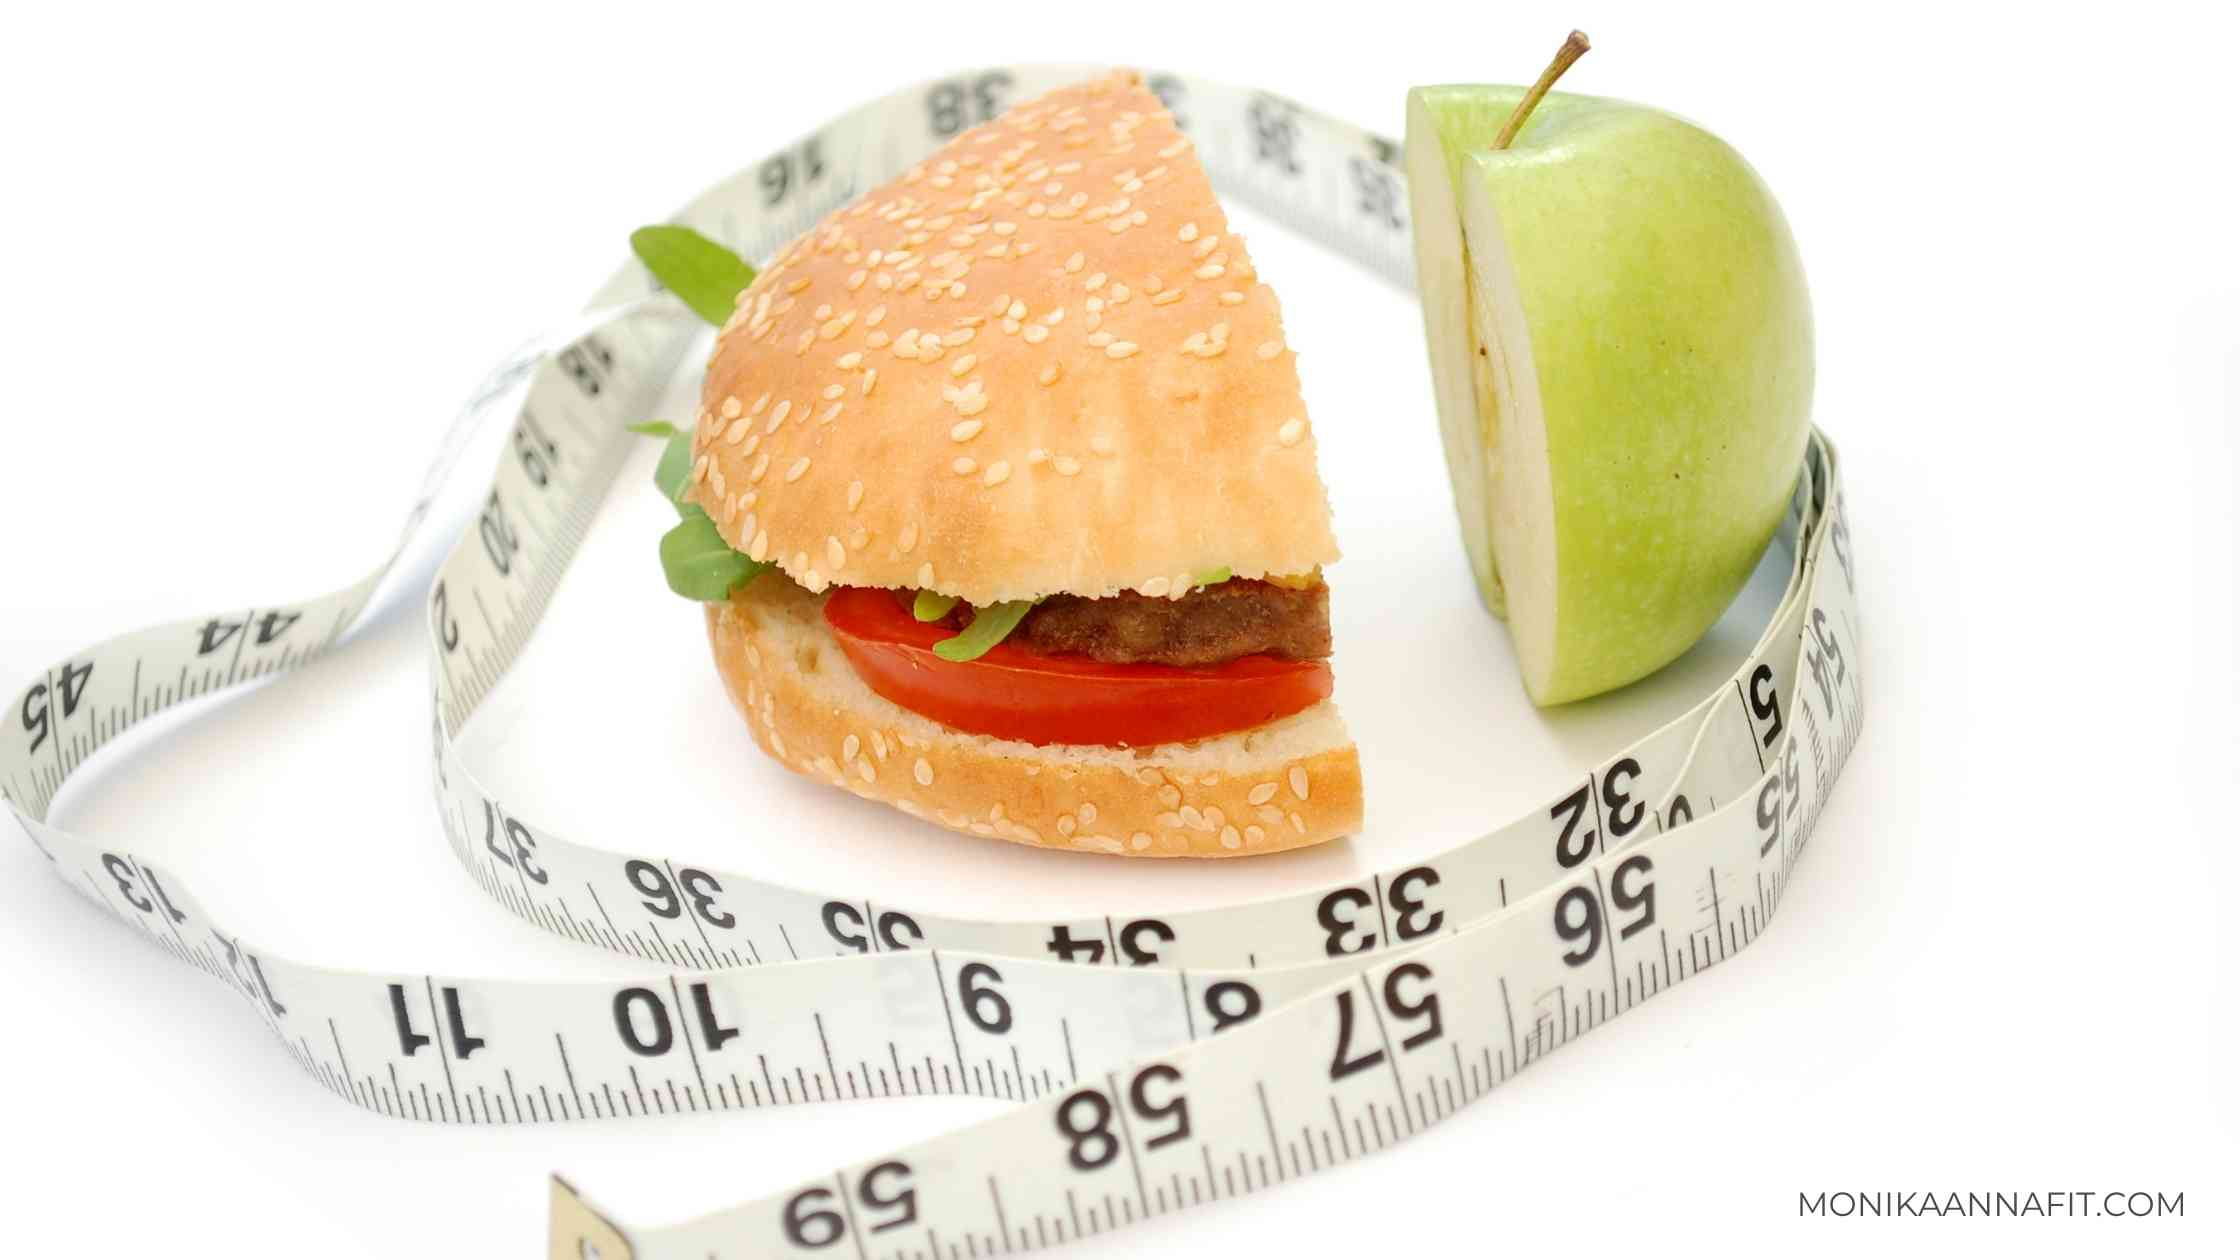 6 super easy tips to cut calories without noticing